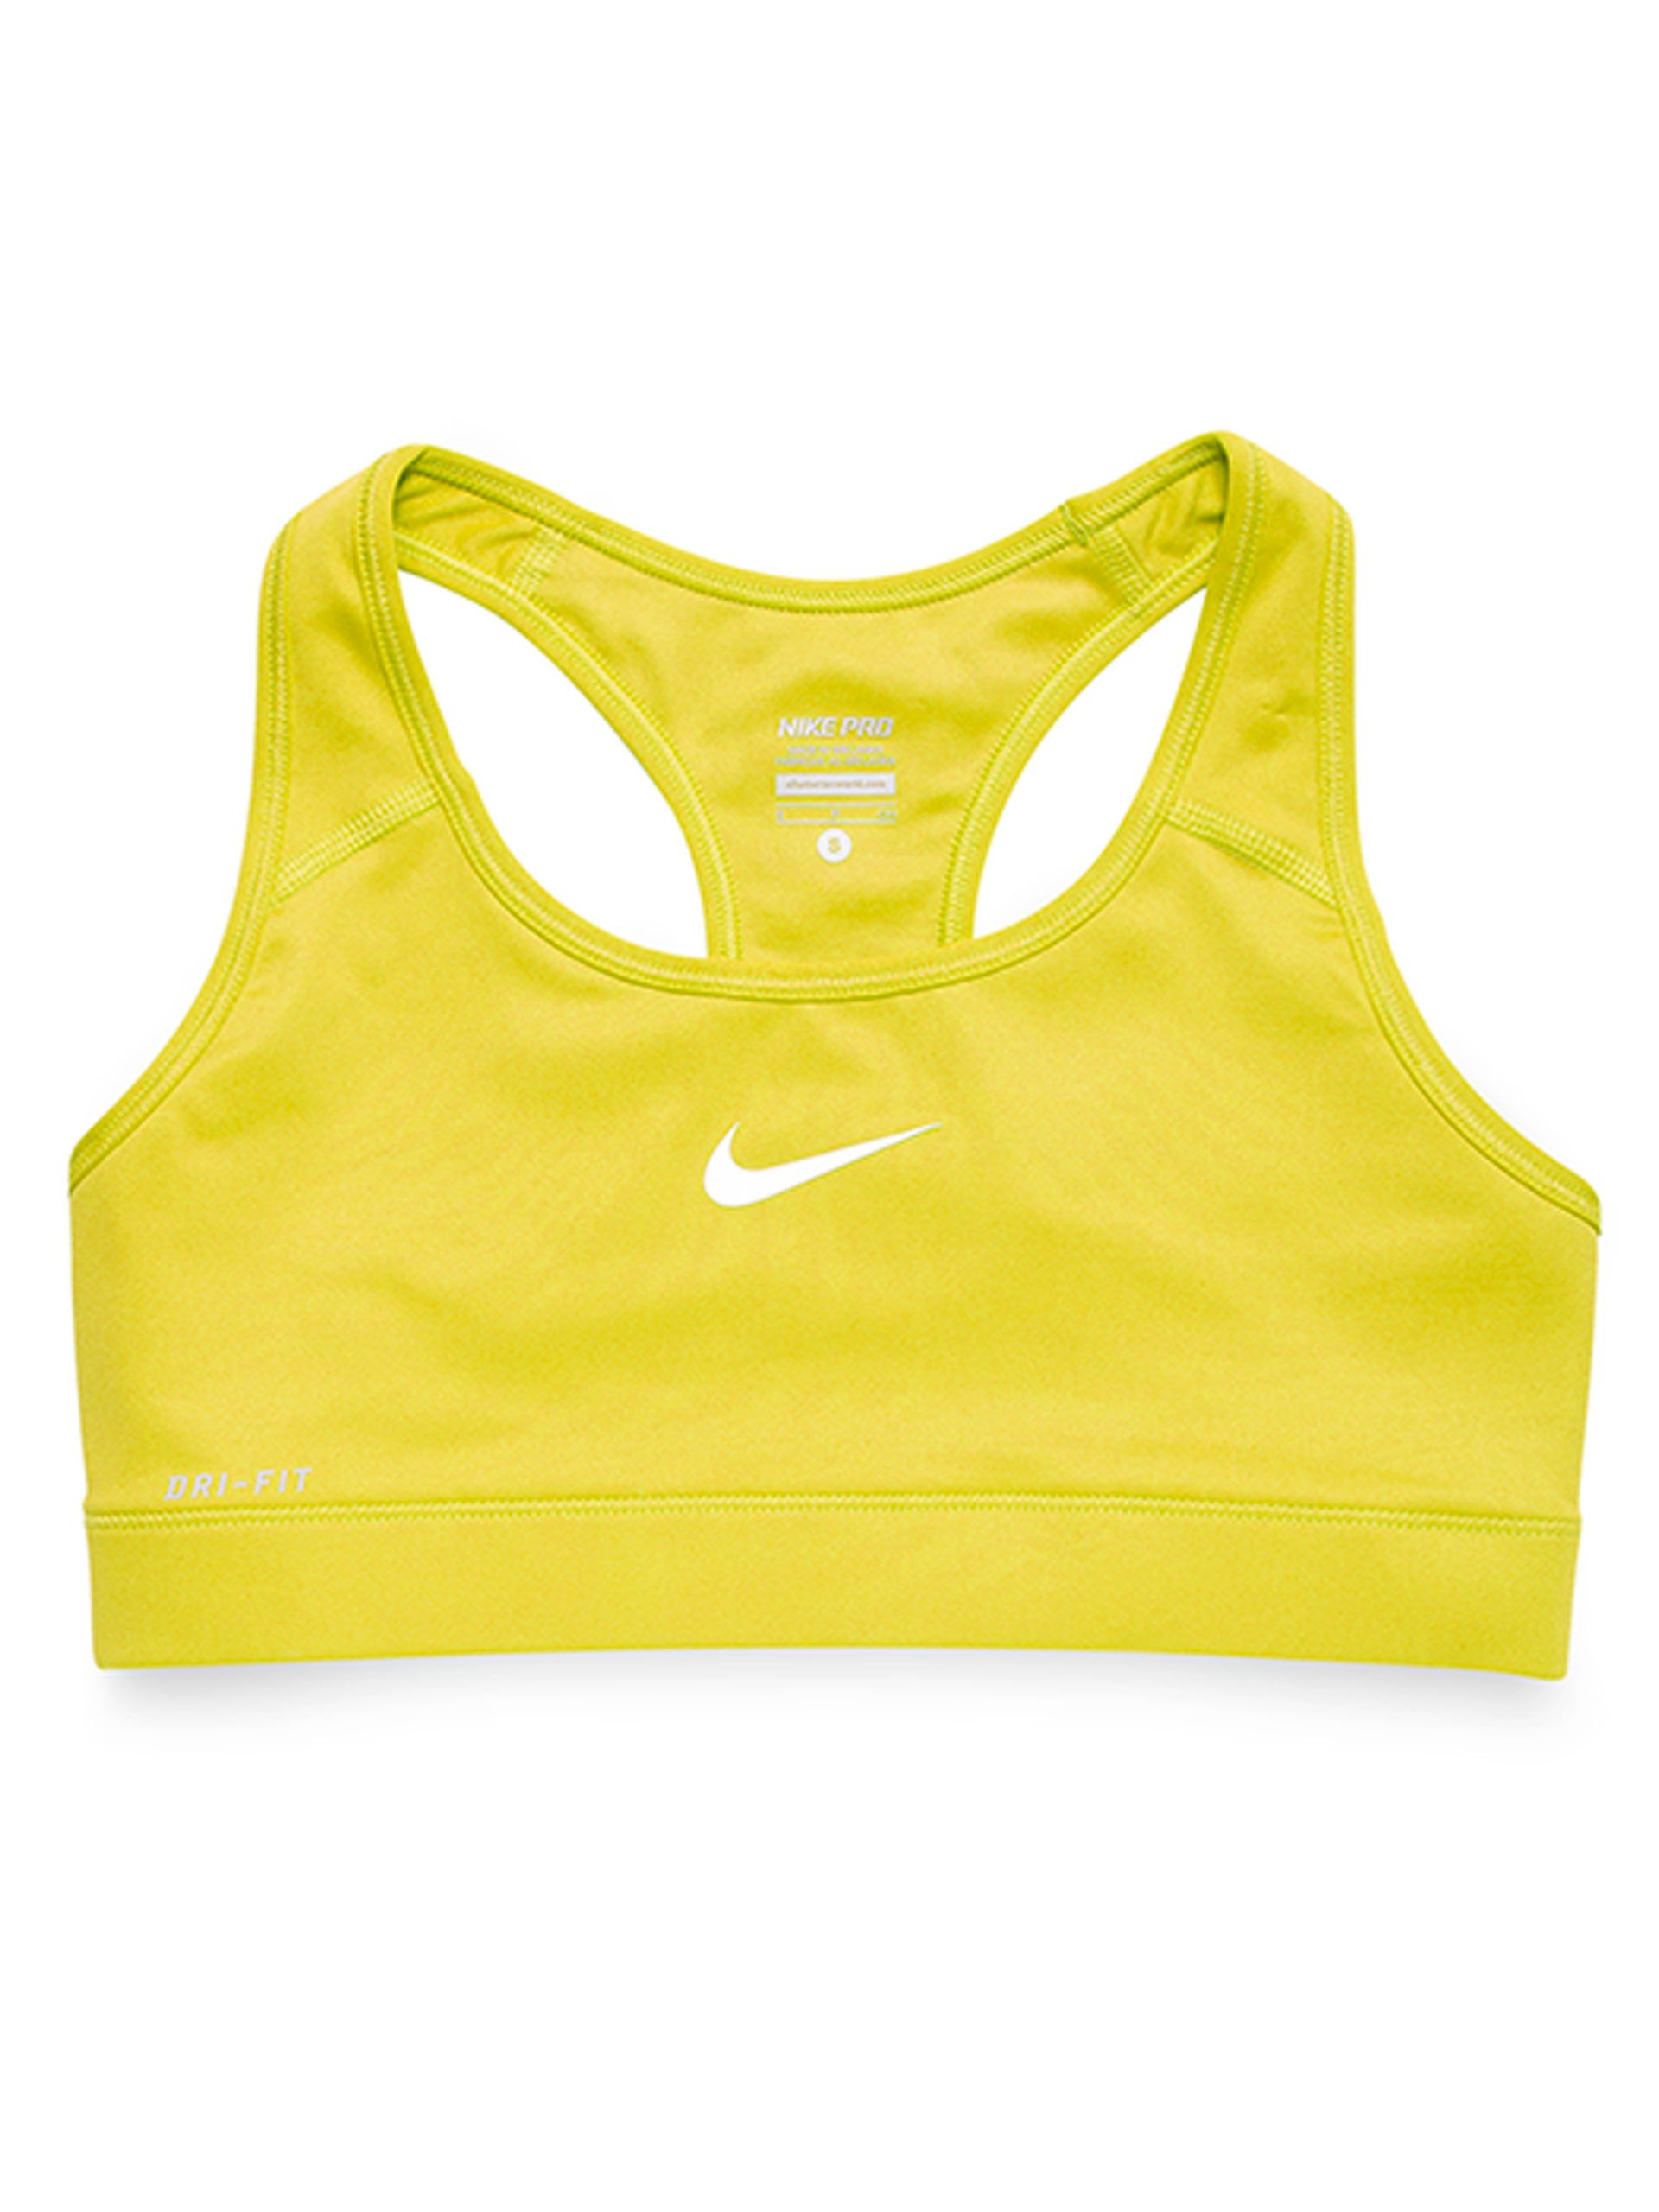 a2c46cf898 Best Sports Bras - Find the Right Sports Bra